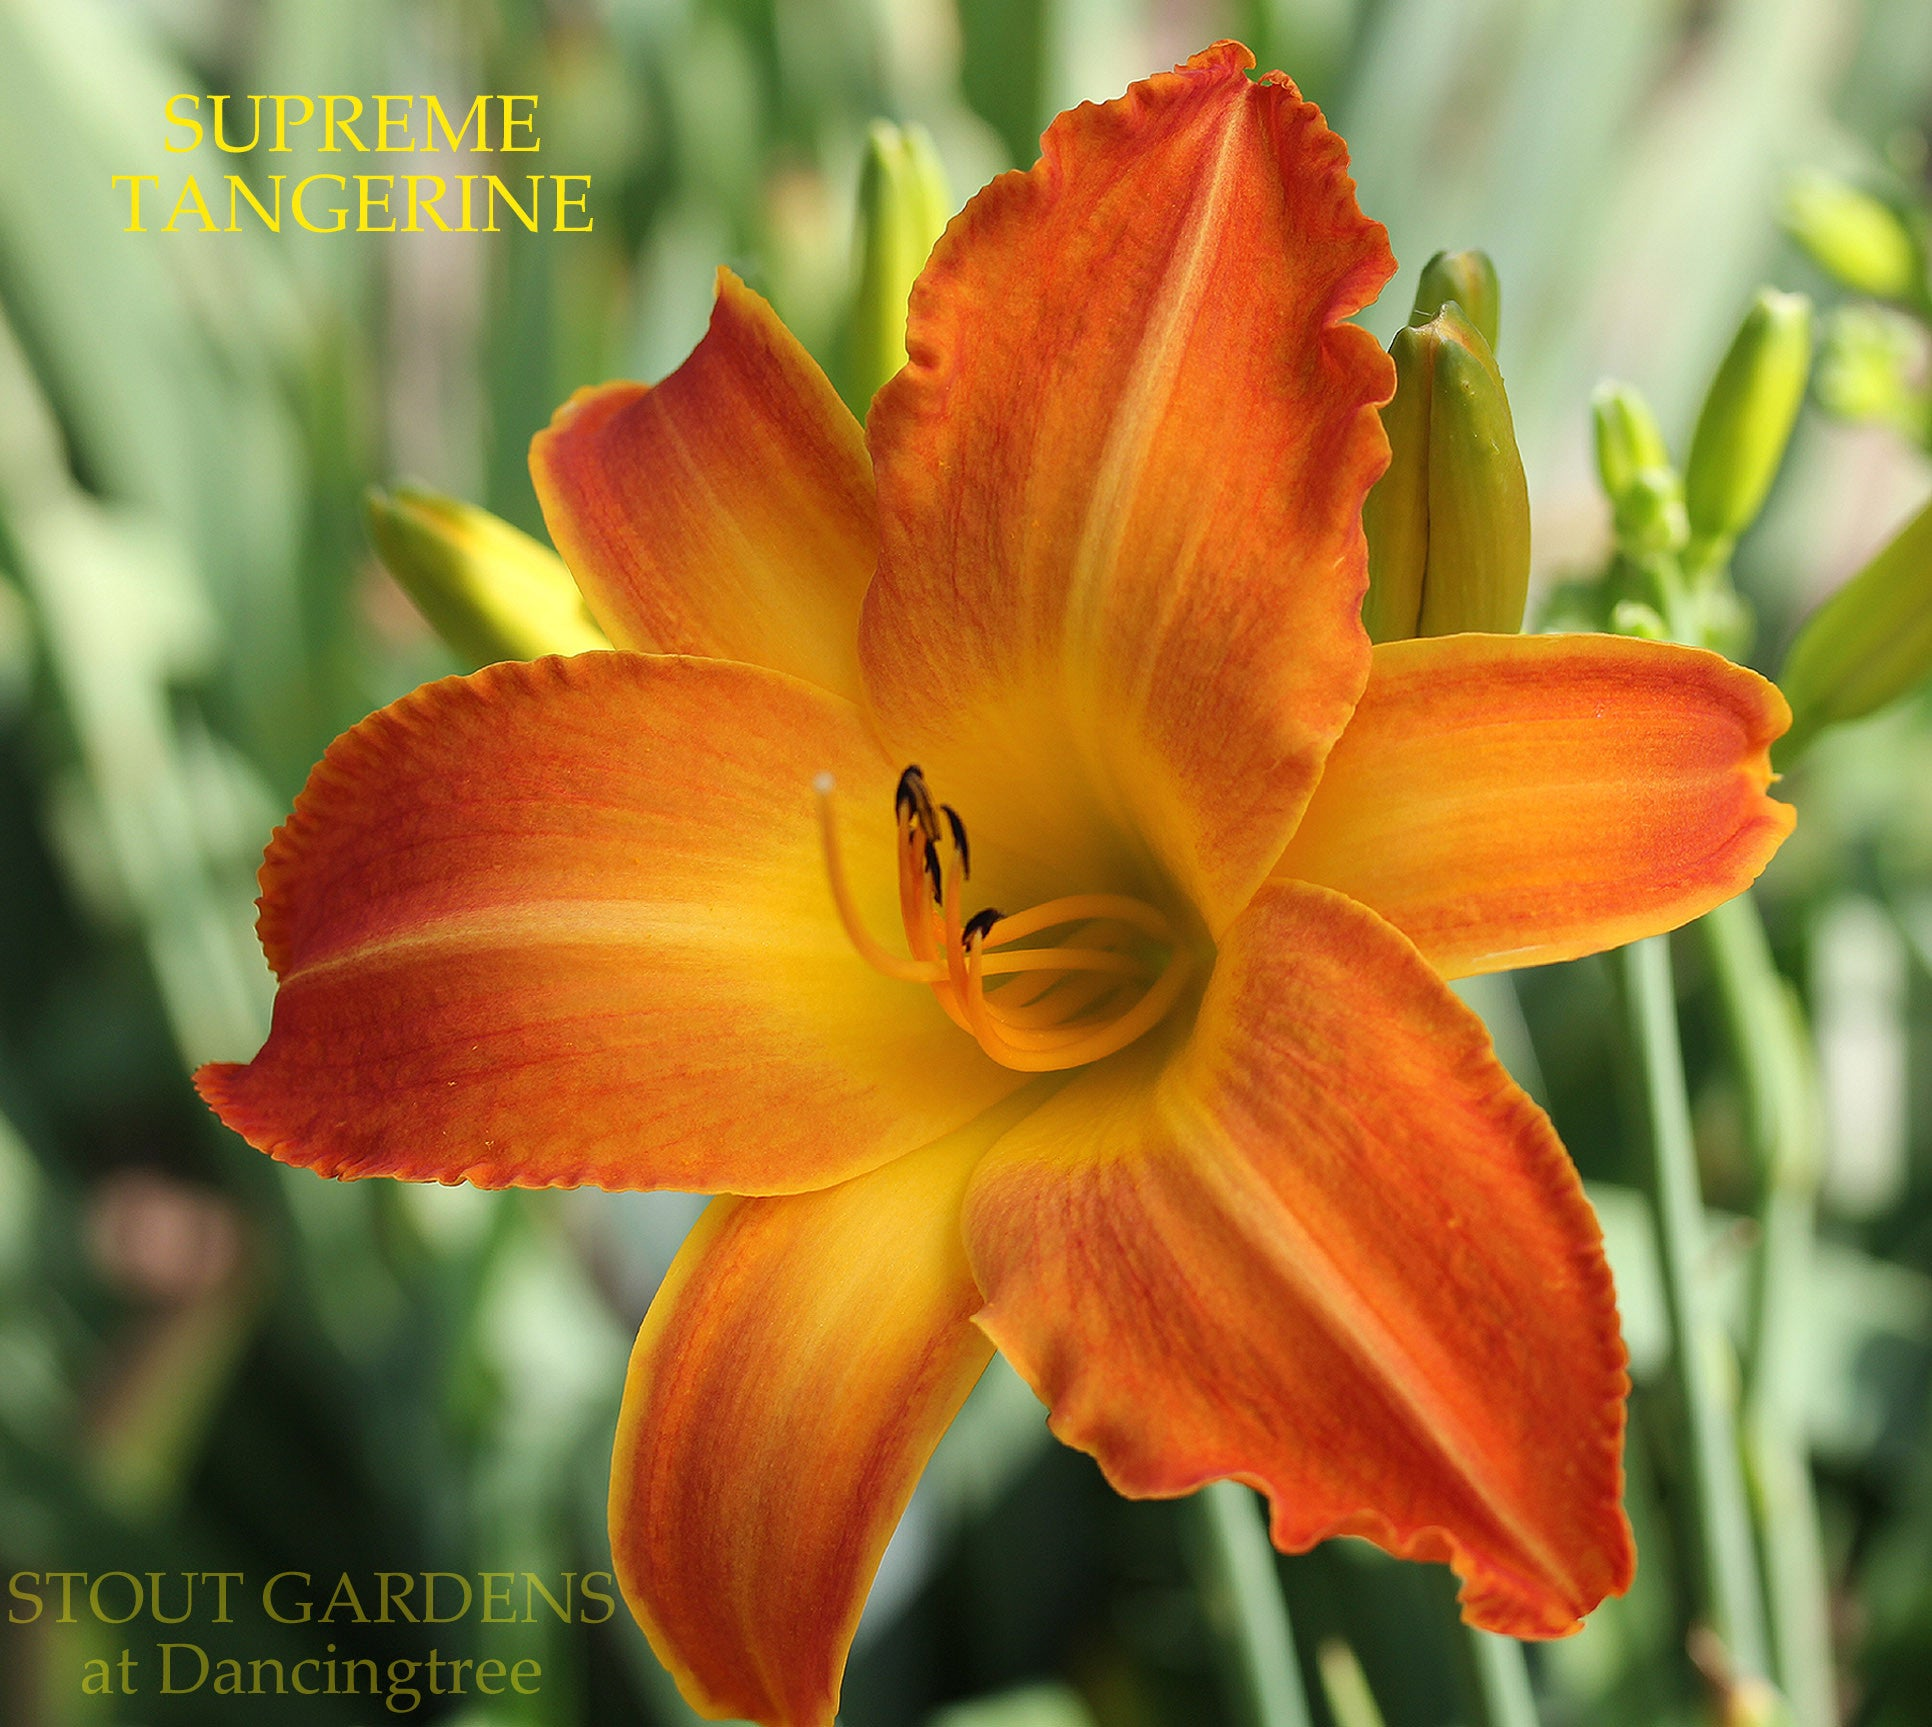 Daylily Supreme Tangerine Stout Gardens At Dancingtree